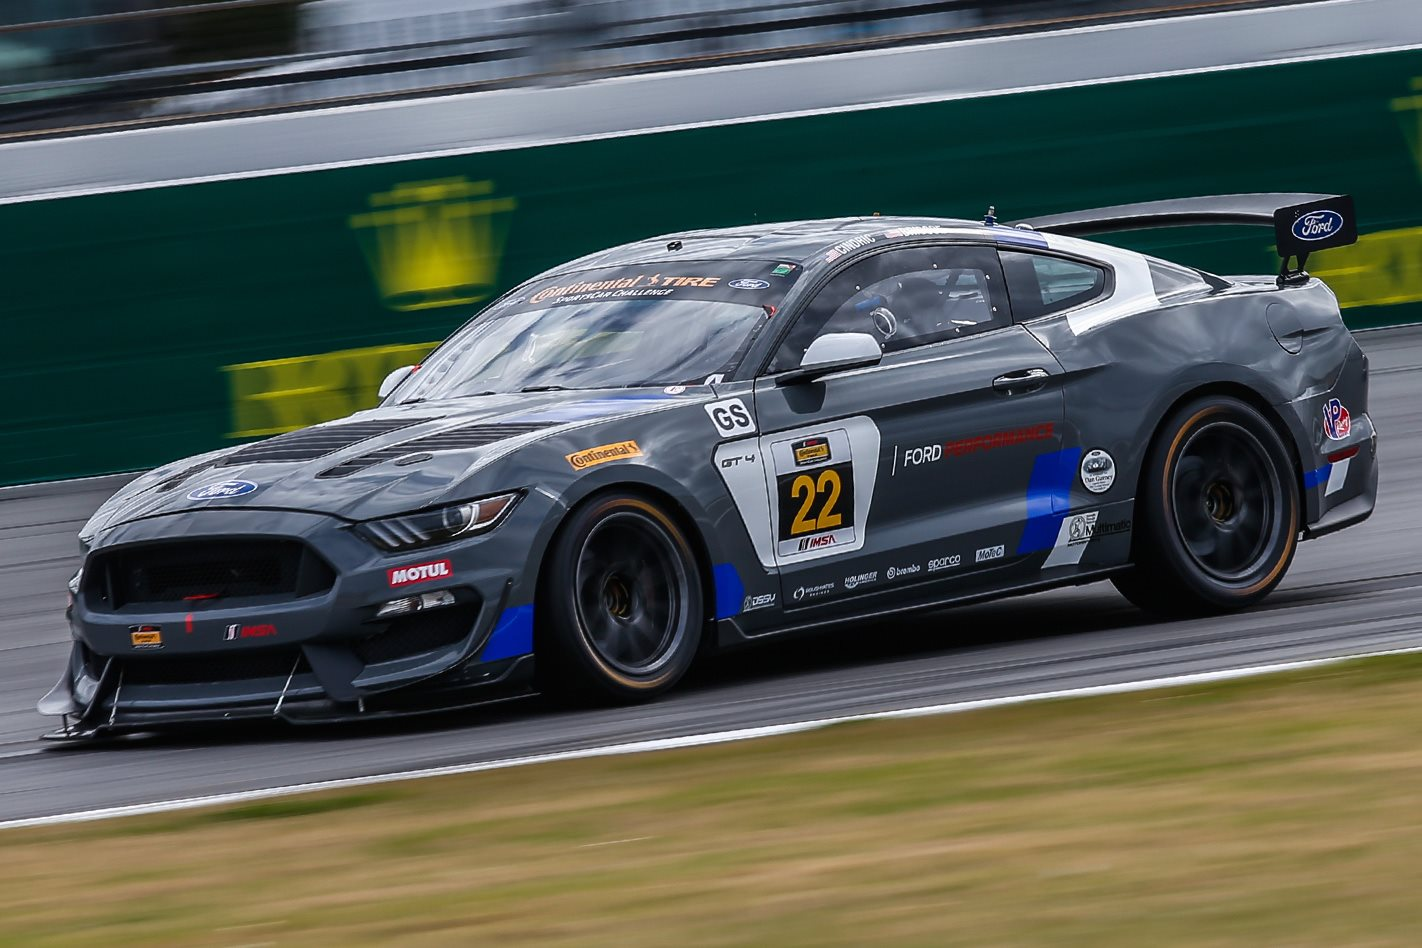 Motor 5 4 Ford Triton >> Ford Mustang free to race in Supercars: report